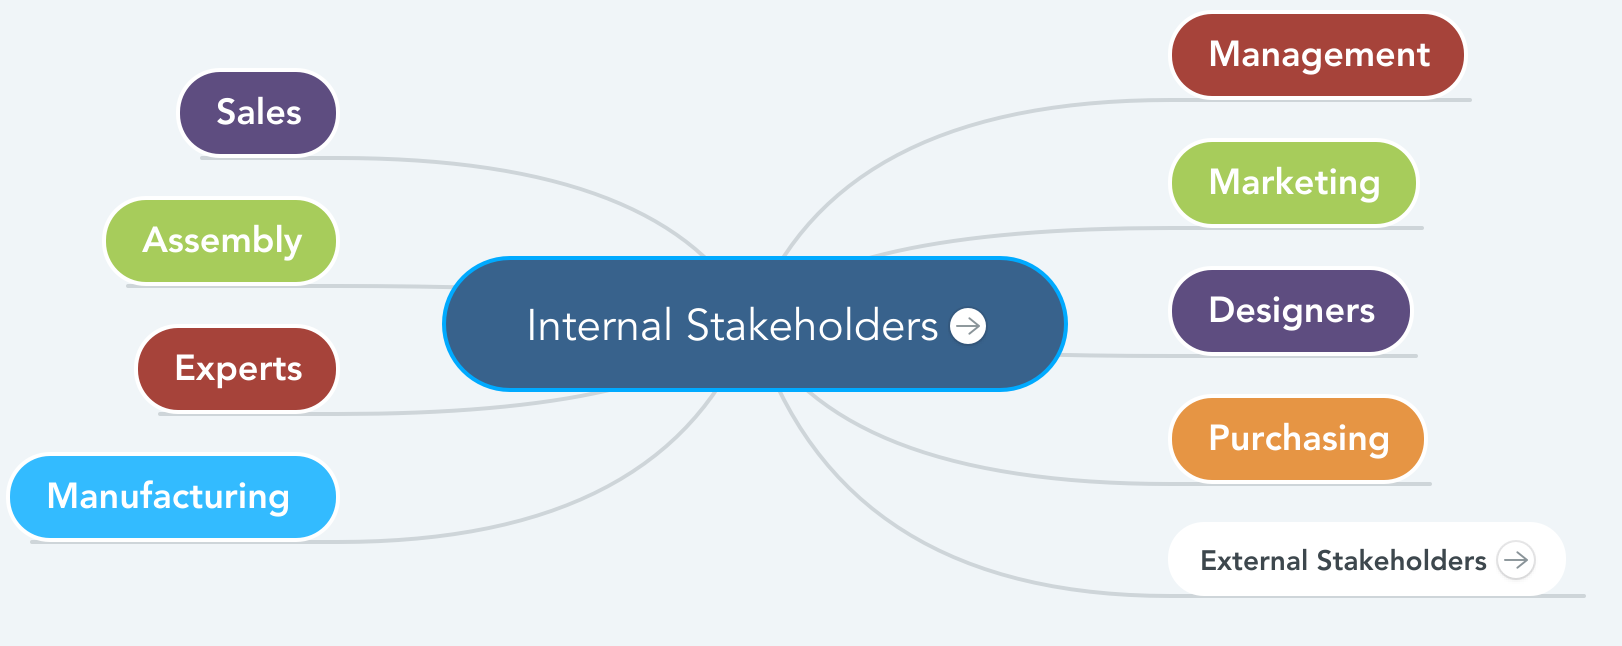 Mindmap showing Internal Stakeholders